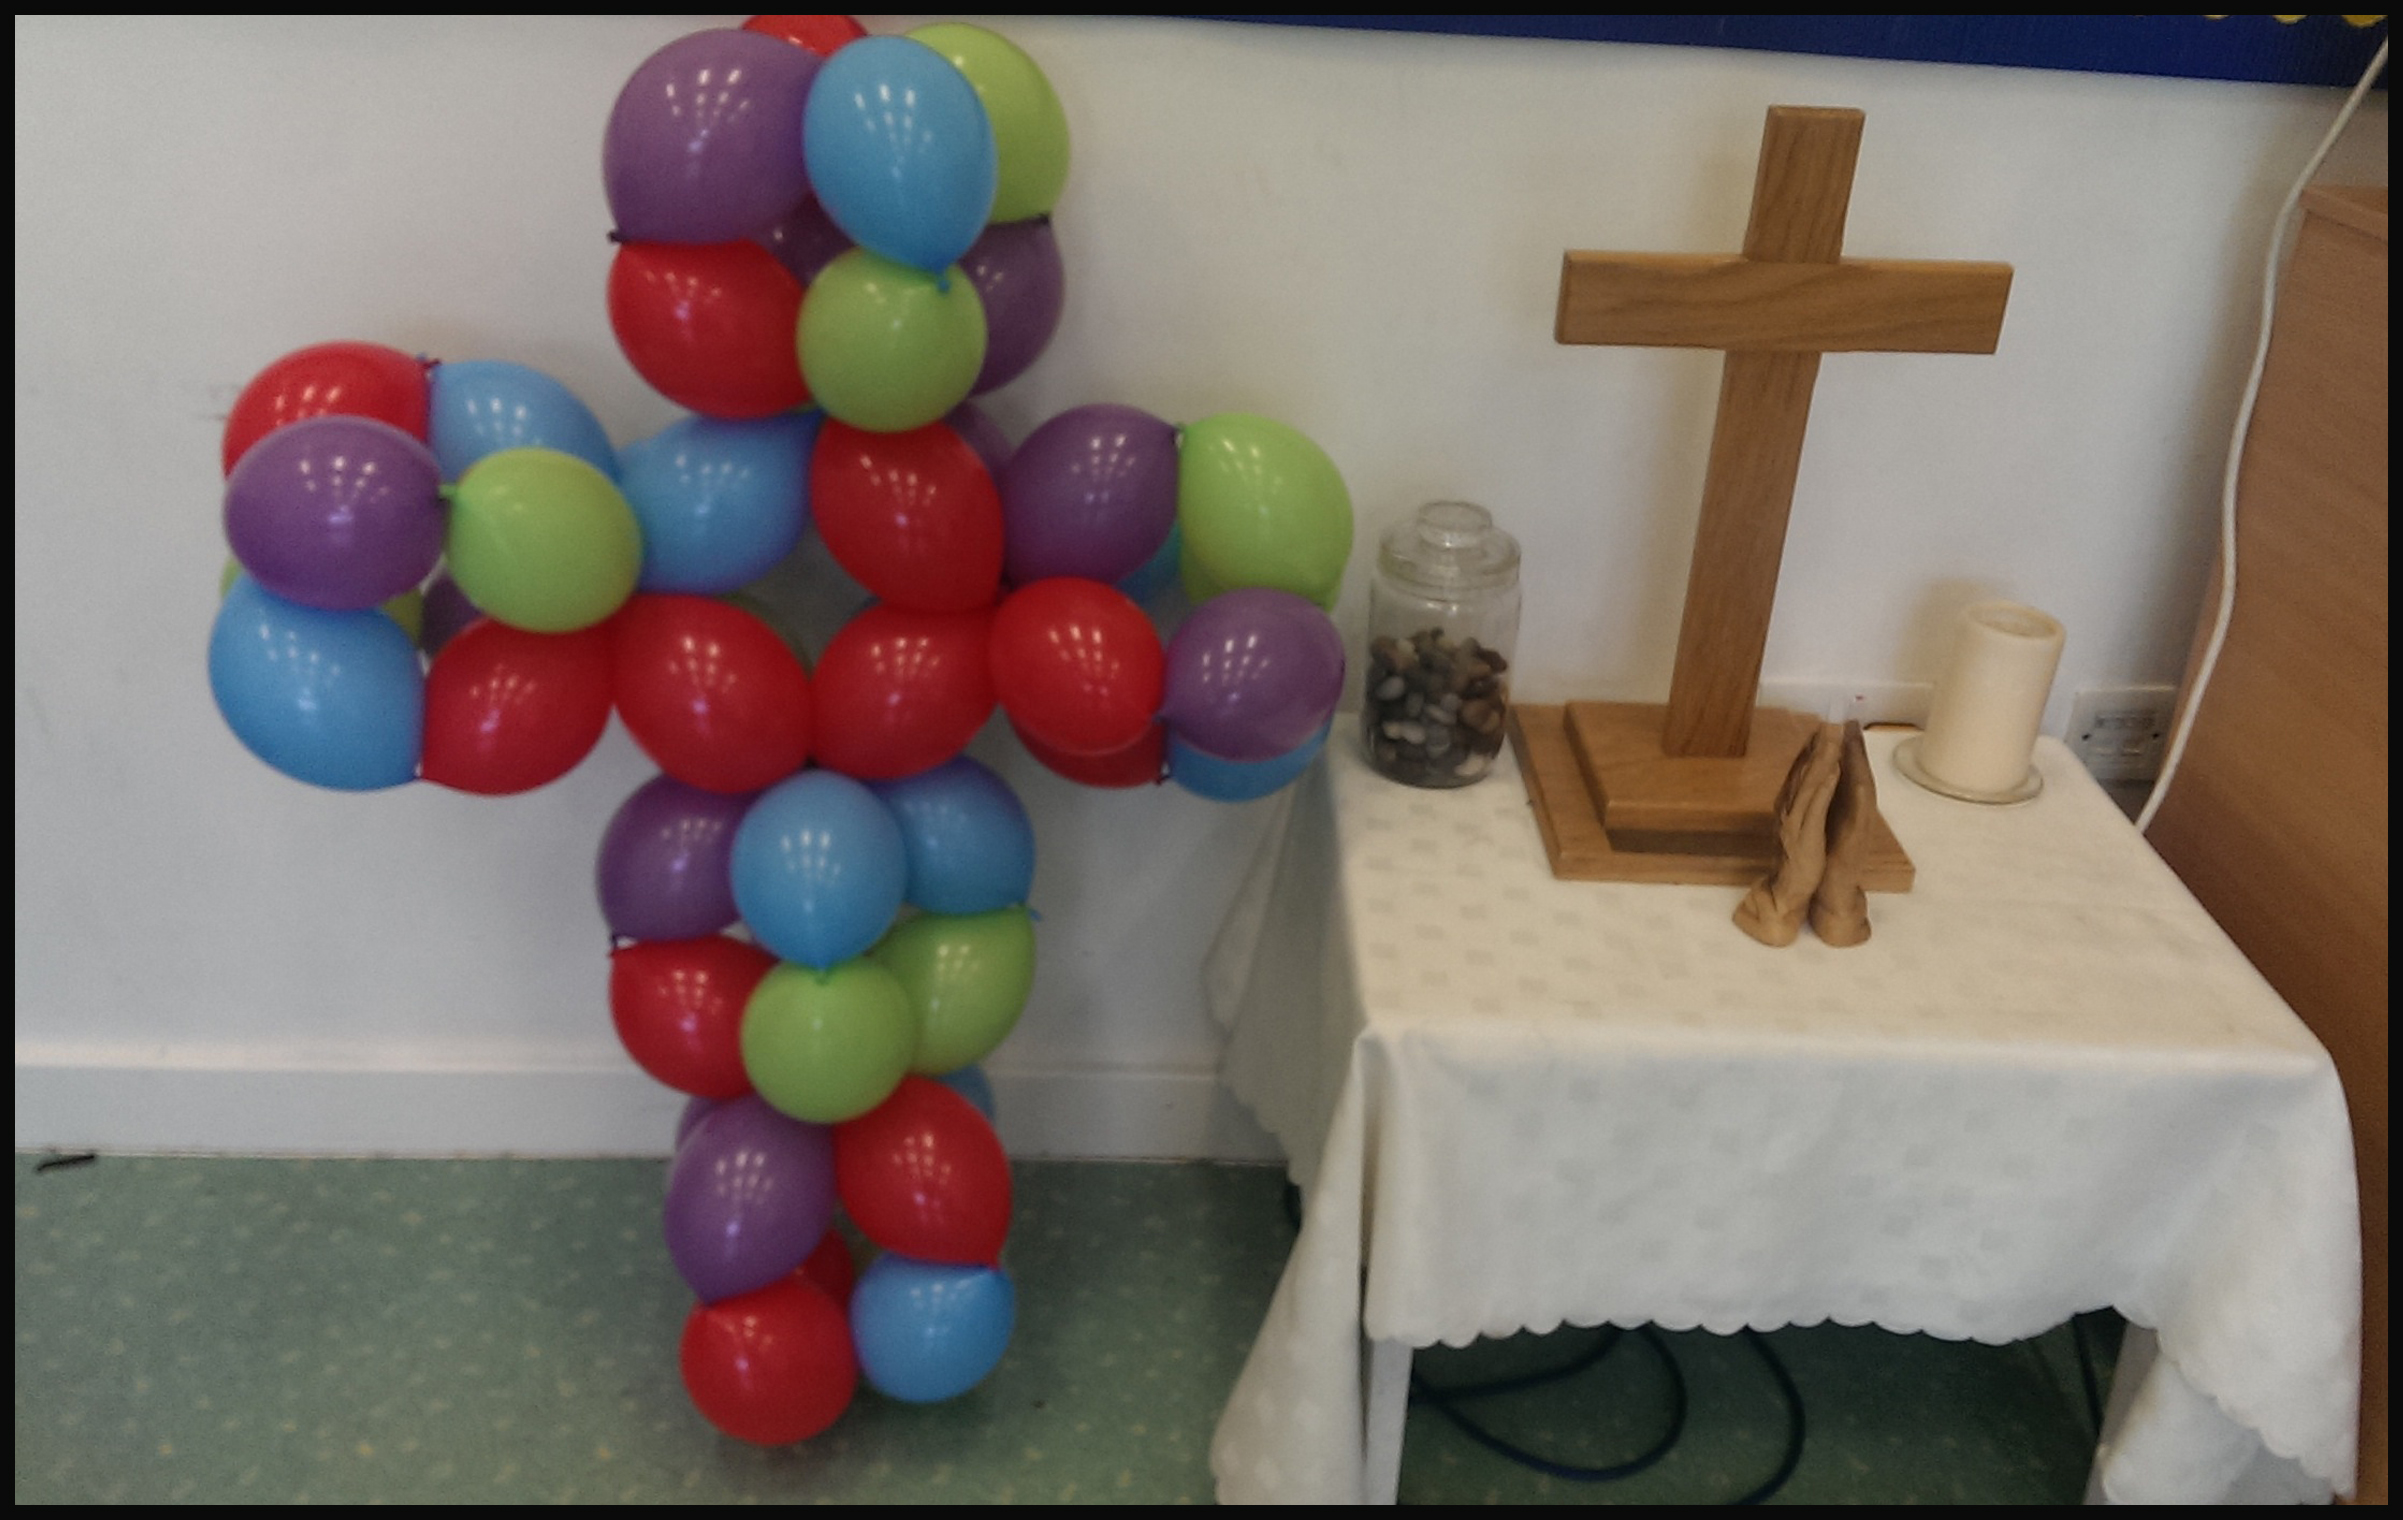 school-balloon-cross-assembly